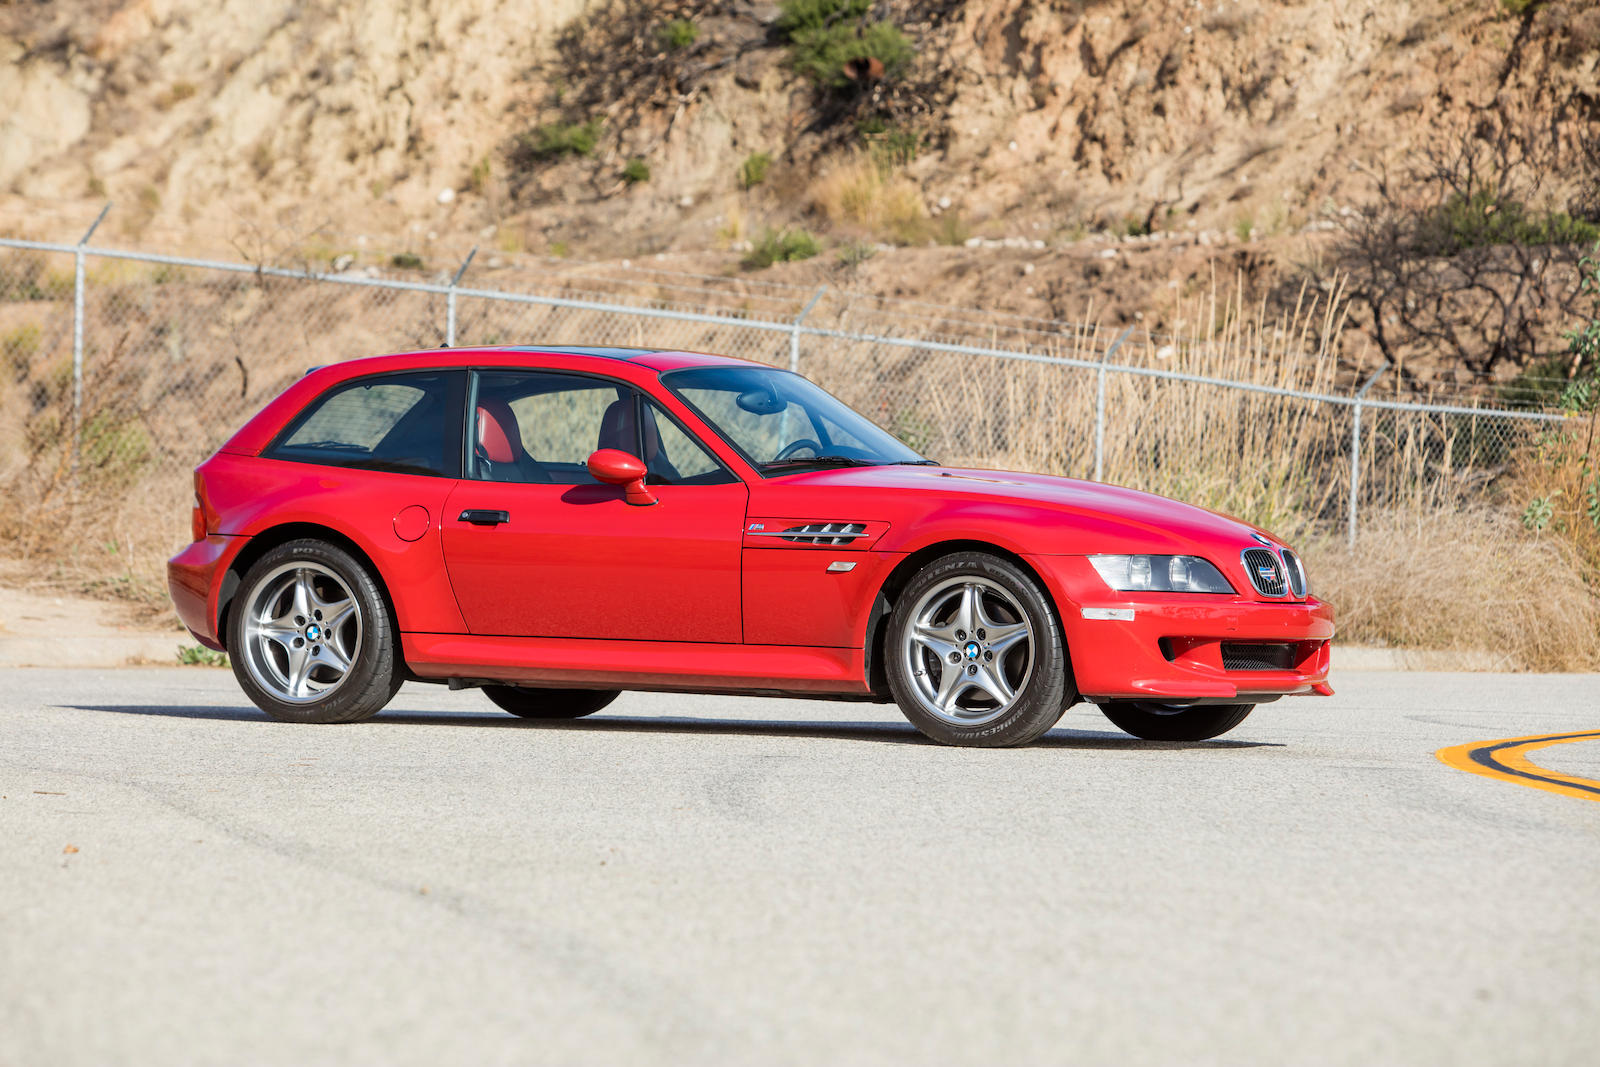 2002 BMW Z3 M Coupe front side